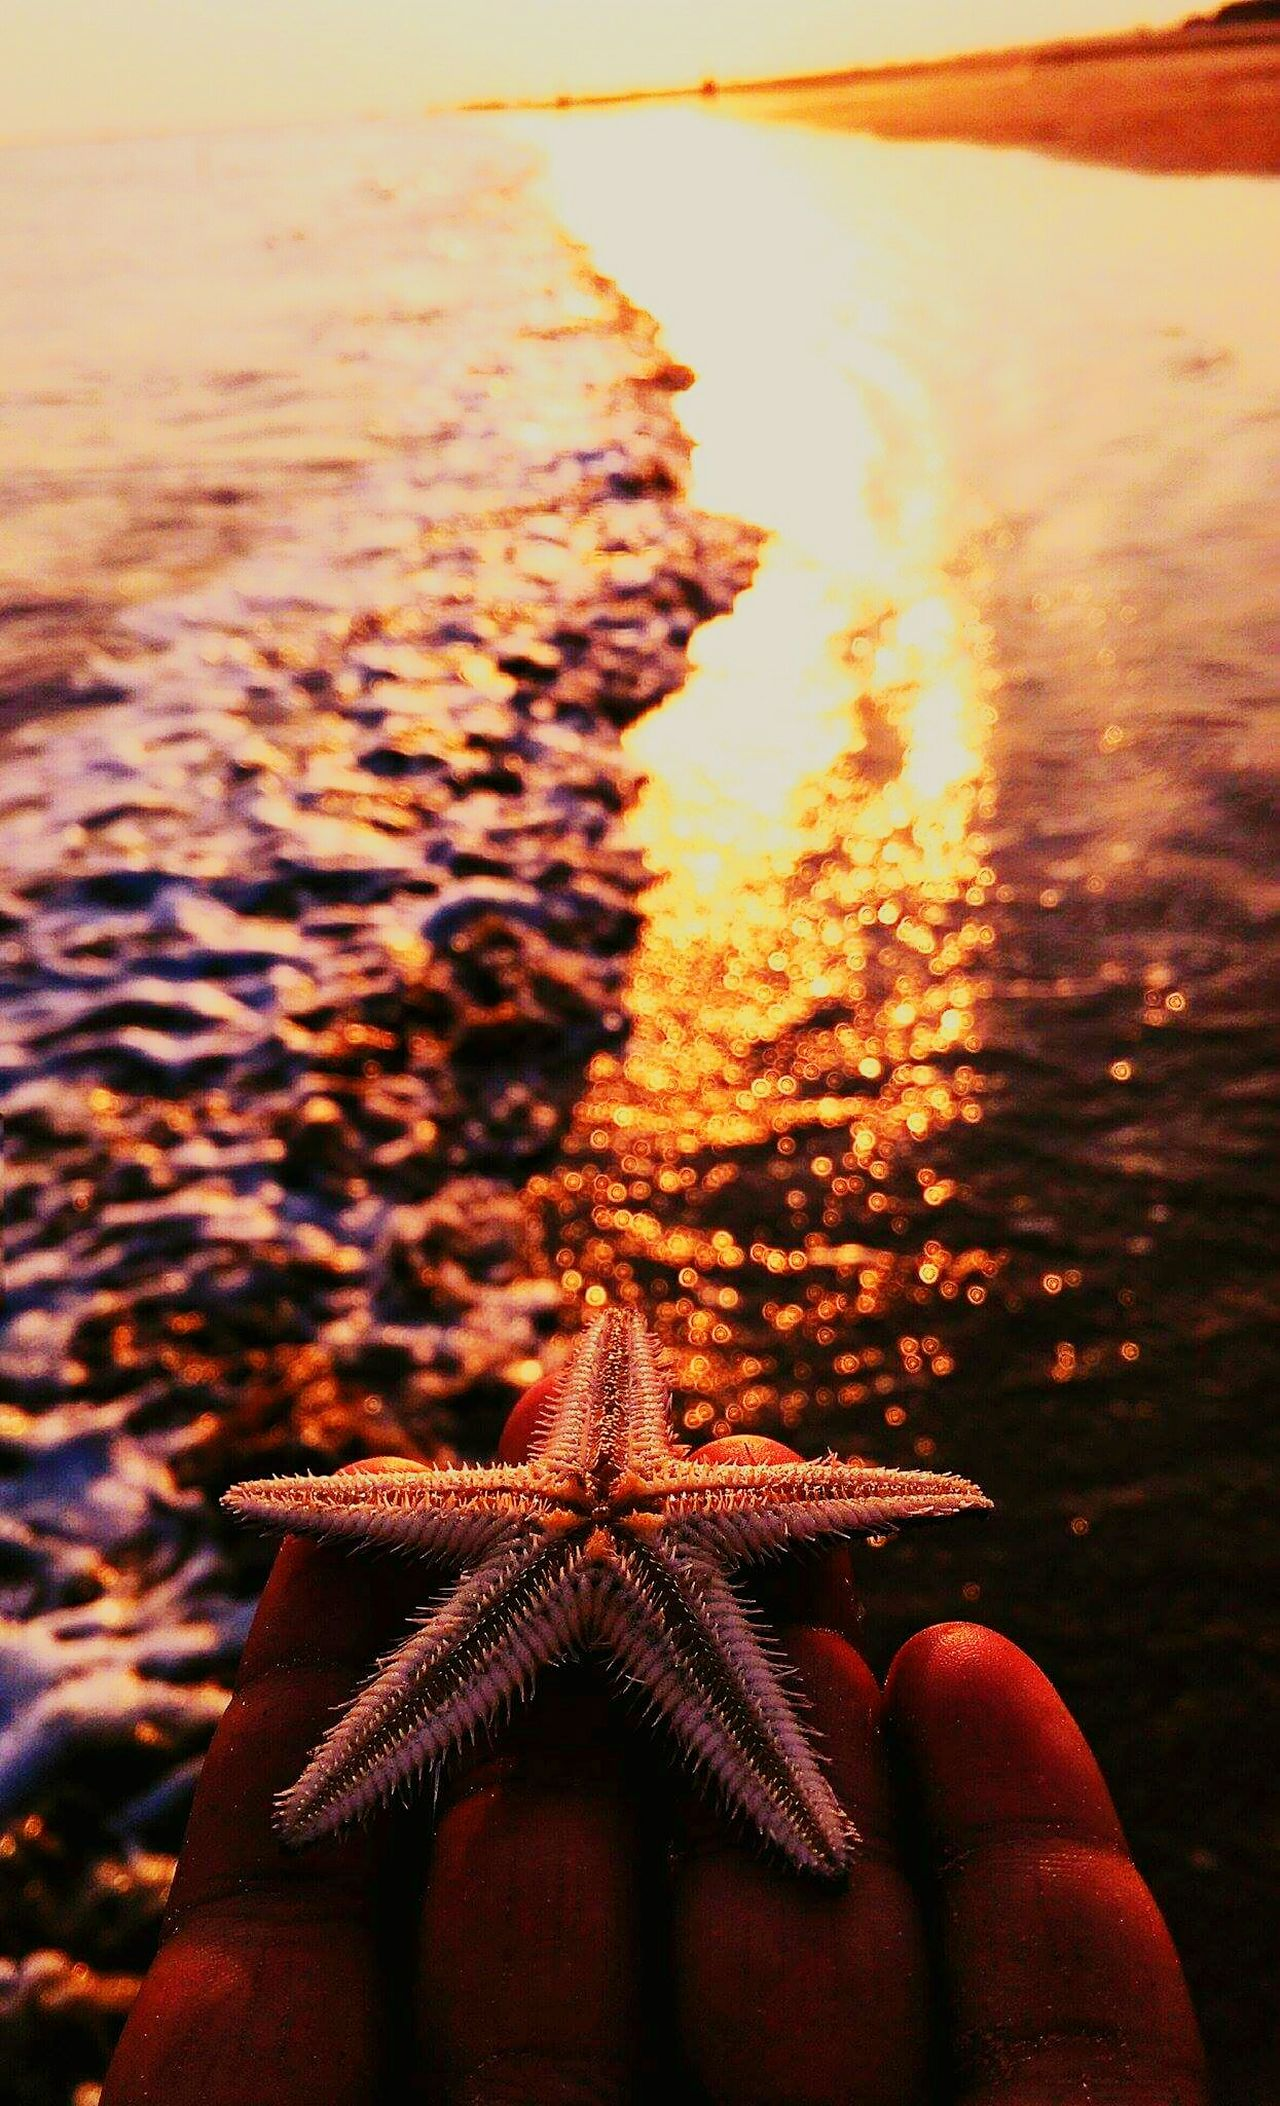 Starfish  Starfish At Beach Water Sea Beach Sunset Sunlight Nature Animal Themes Sand Sea Life Beauty In Nature No People Close-up Outdoors Animals In The Wild Underwater Day UnderSea